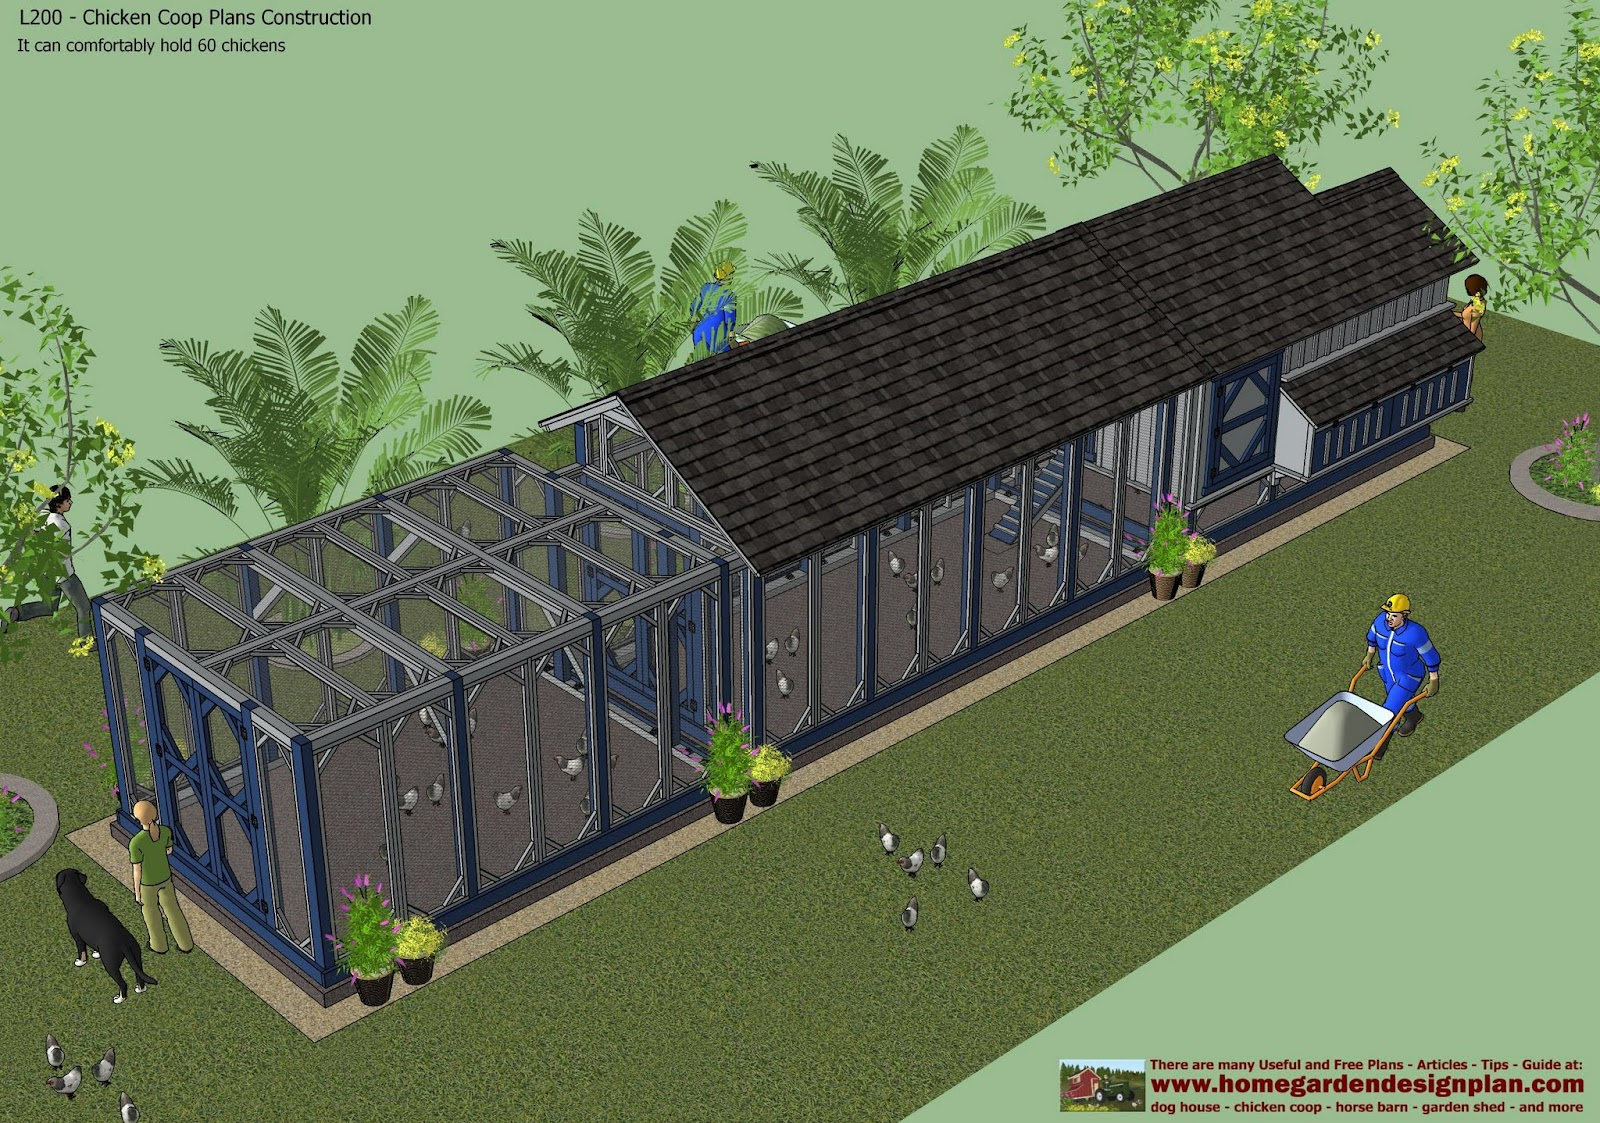 Home garden plans l200 chicken coop plans construction for Design construction